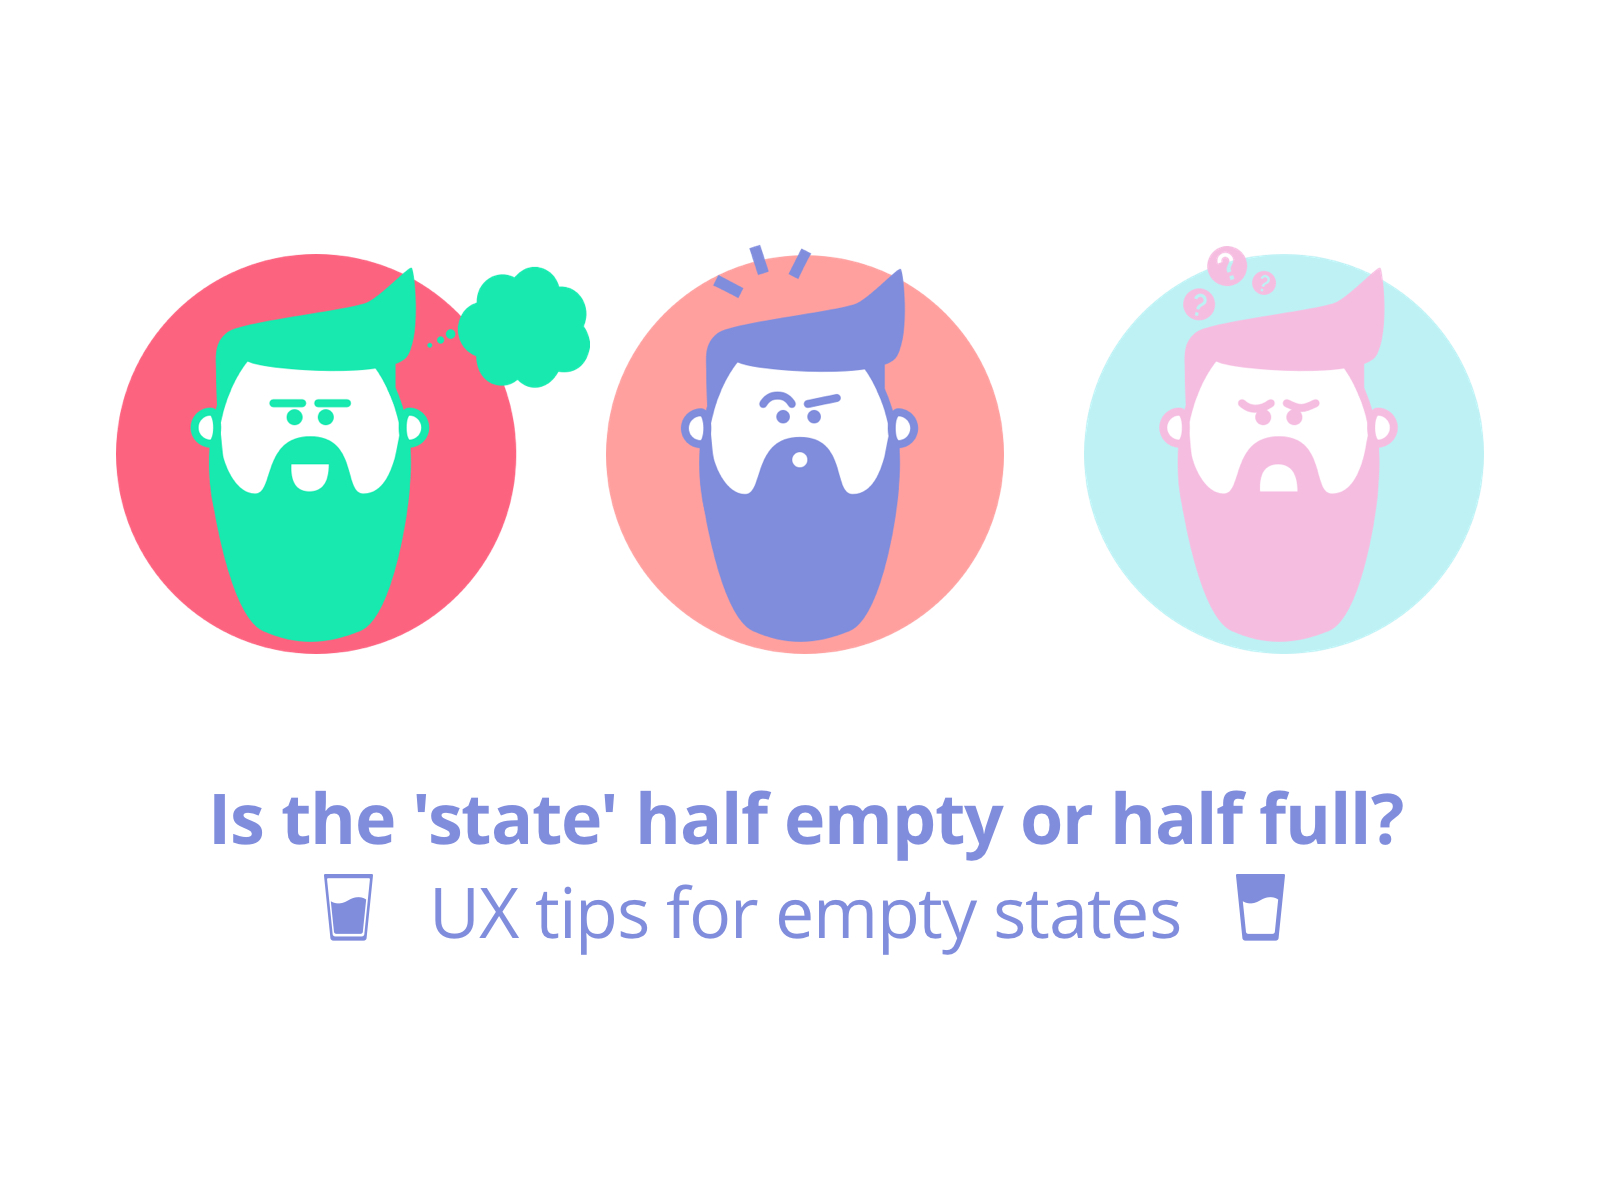 UX tips for empty states - Cover